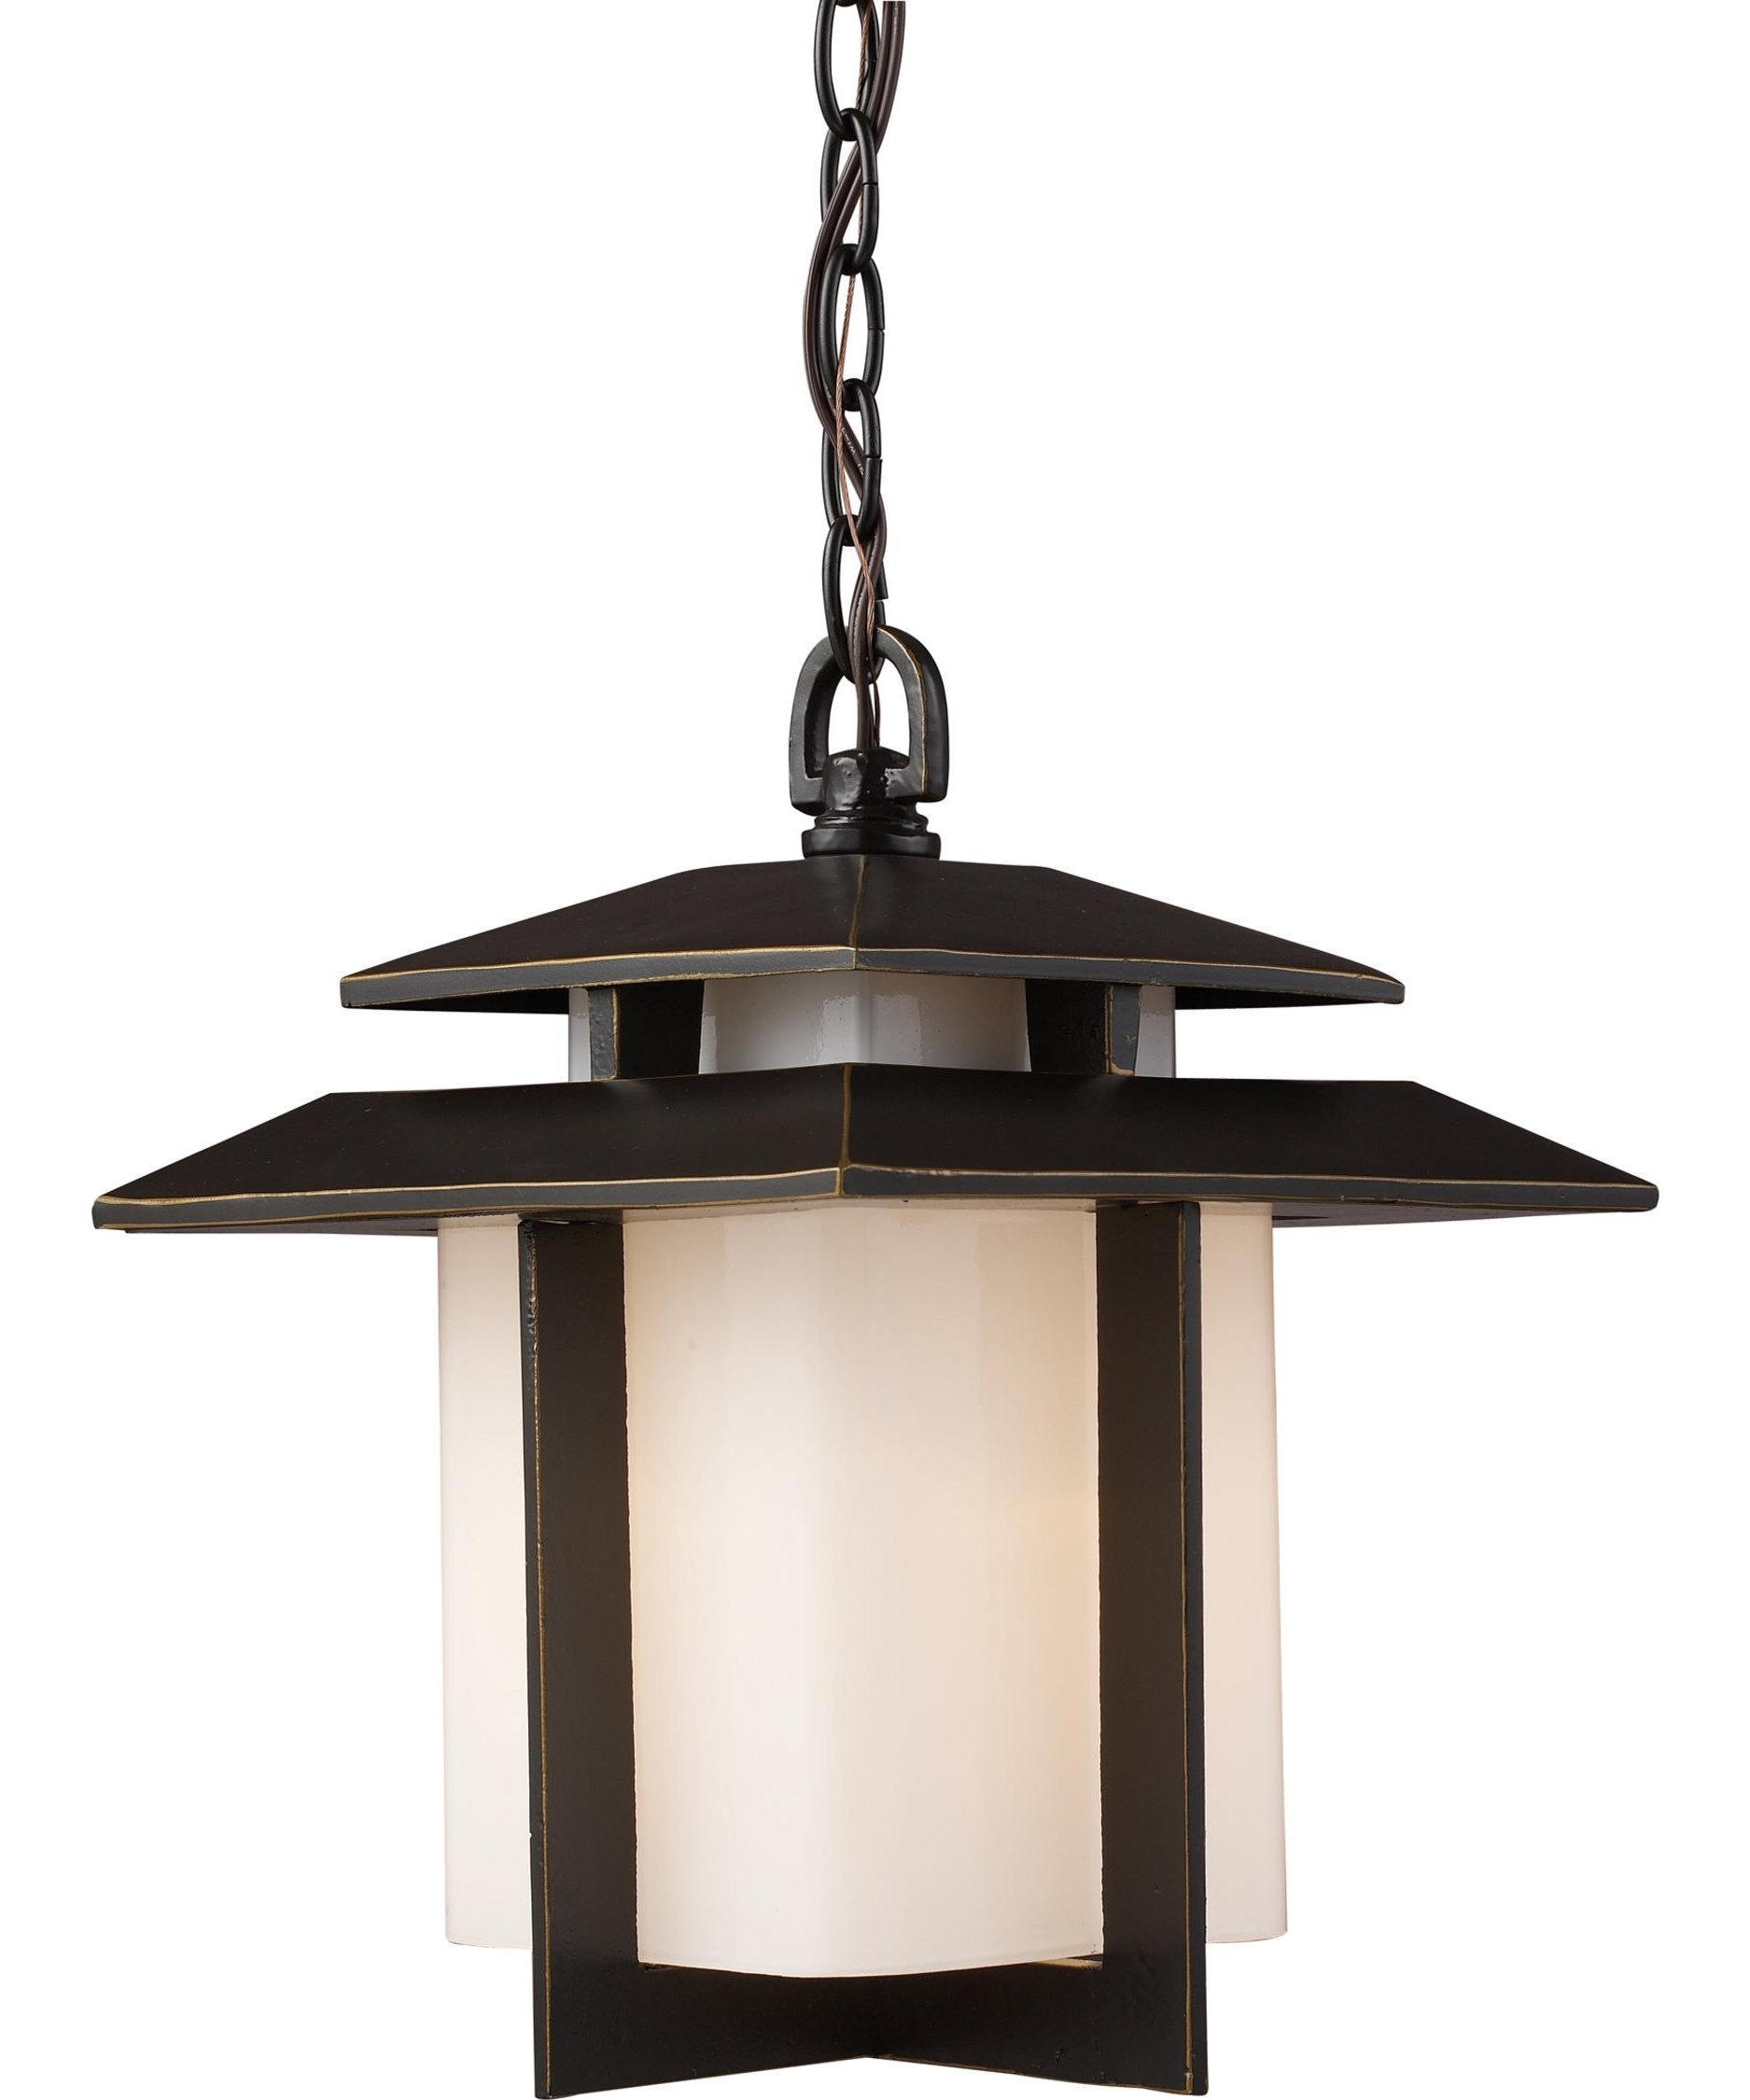 Outdoor Ceiling Pendant Lights With Regard To Best And Newest Light : Ceiling Lights Outdoor (View 13 of 20)